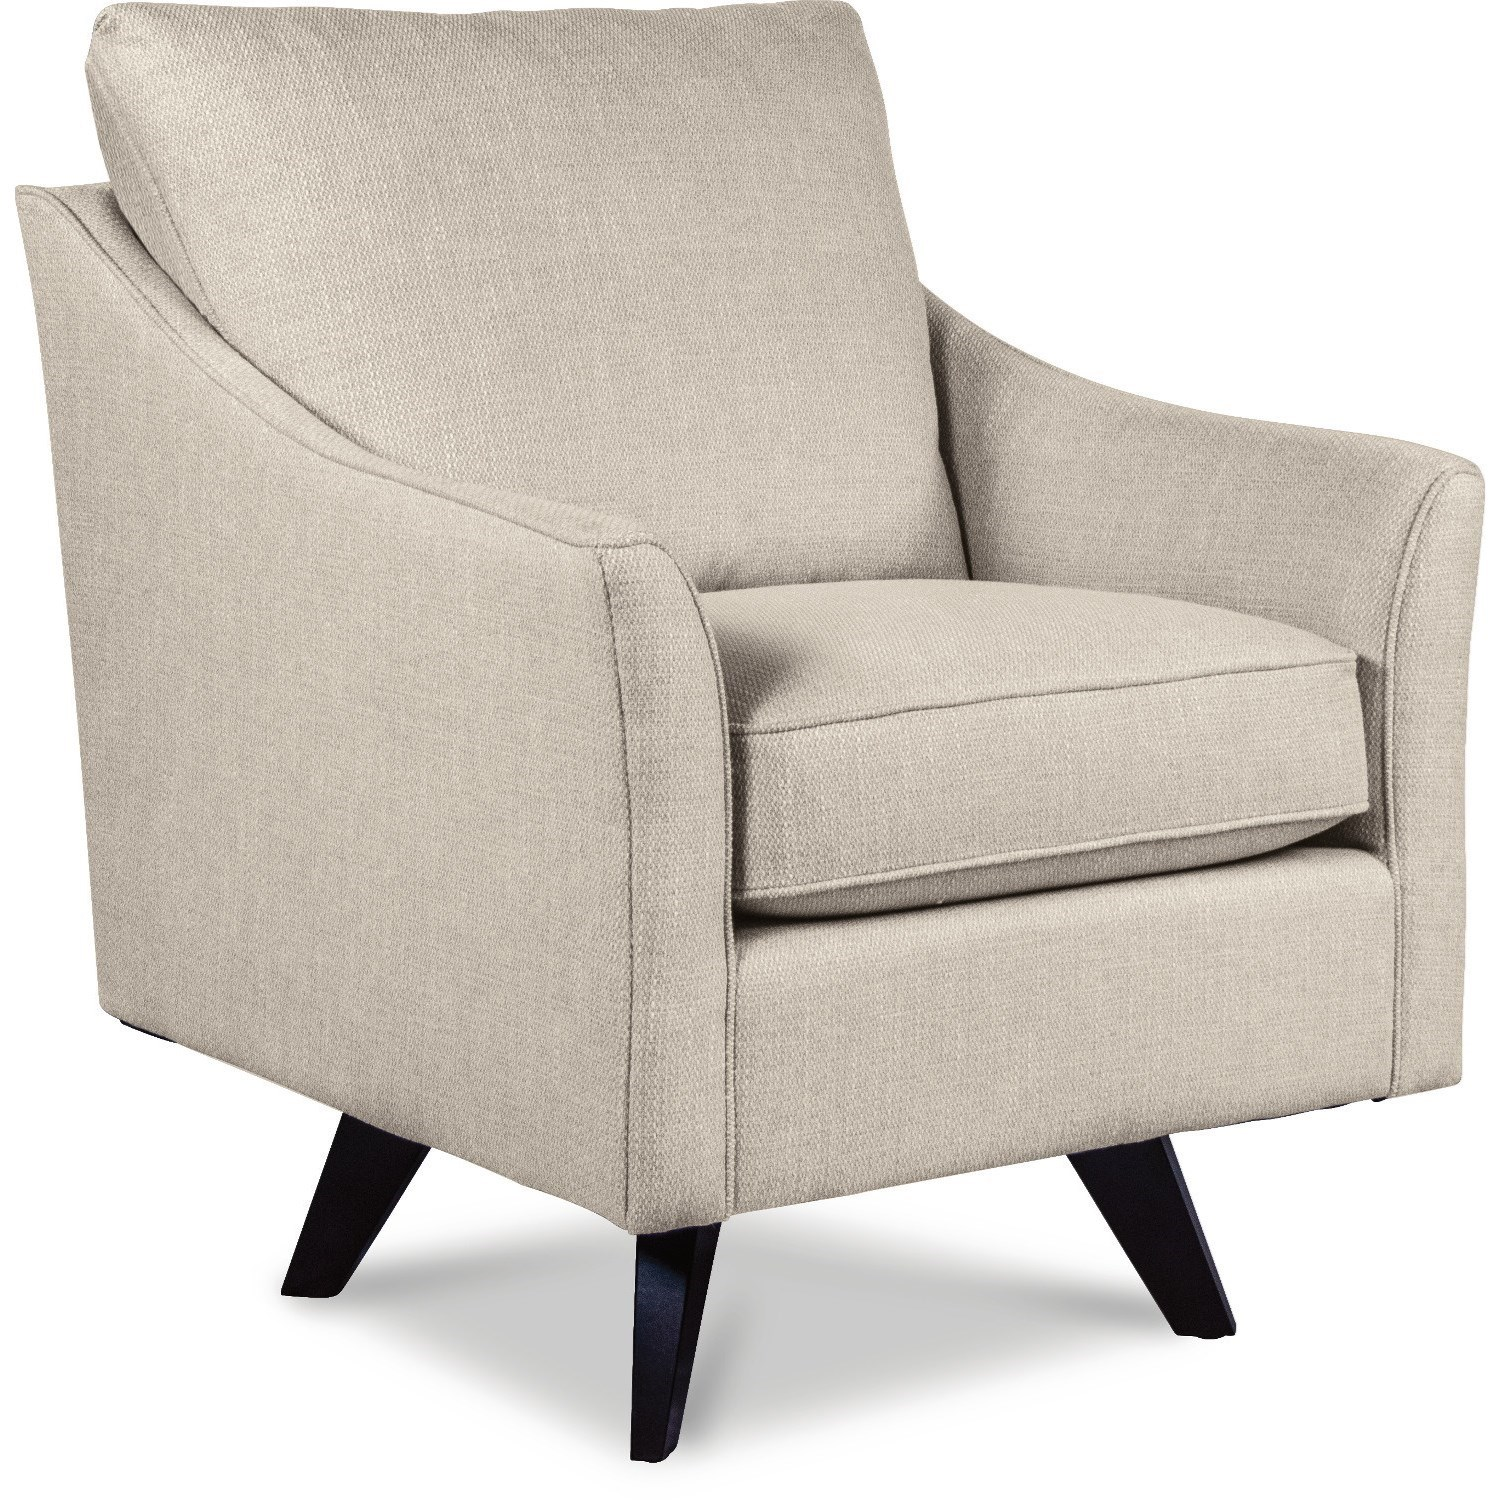 Reegan Swivel Chair with Splayed Wood Legs and Premier ComfortCore Cushion